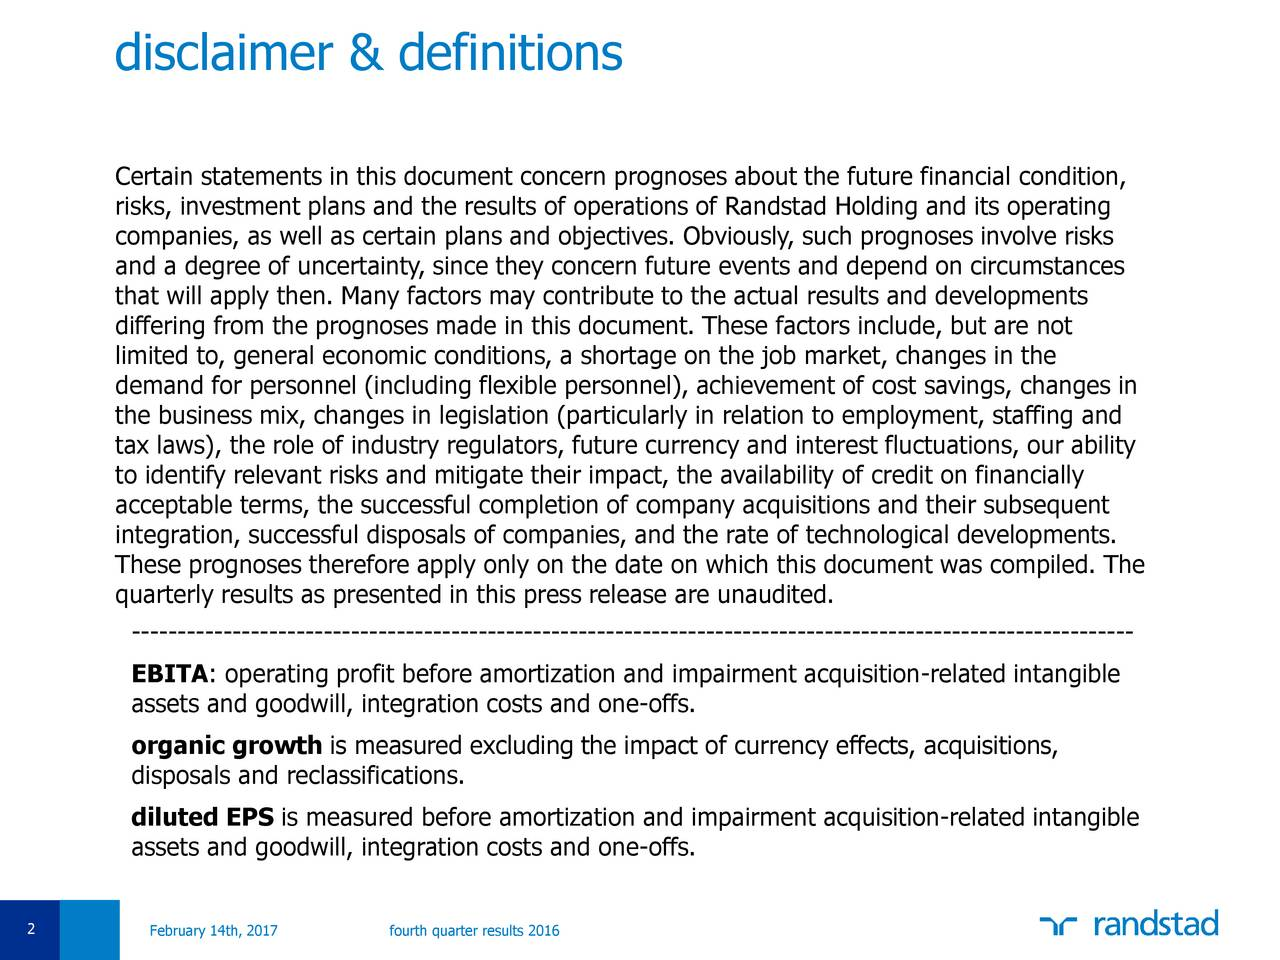 To edit date & footer title Certain statements in this document concern prognoses about the future financial condition, choose View>Header/Footer risks, investment plans and the results of operations of Randstad Holding and its operating companies, as well as certain plans and objectives. Obviously, such prognoses involve risks Change fixed date to presentation date and a degree of uncertainty, since they concern future events and depend on circumstances Change footer field to title of that will apply then. Many factors may contribute to the actual results and developments the presentation differing from the prognoses made in this document. These factors include, but are not Click on apply to all for limited to, general economic conditions, a shortage on the job market, changes in the changes on all current and demand for personnel (including flexible personnel), achievement of cost savings, changes in new slides. the business mix, changes in legislation (particularly in relation to employment, staffing and tax laws), the role of industry regulators, future currency and interest fluctuations, our ability to identify relevant risks and mitigate their impact, the availability of credit on financially acceptable terms, the successful completion of company acquisitions and their subsequent integration, successful disposals of companies, and the rate of technological developments. These prognoses therefore apply only on the date on which this document was compiled. The quarterly results as presented in this press release are unaudited. -------------------------------------------------------------------------------------------------------------- EBITA: operating profit before amortization and impairment acquisition-related intangible assets and goodwill, integration costs and one-offs. organic growth is measured excluding the impact of currency effects, acquisitions, disposals and reclassifications. diluted EPS is measured before amortization and impairment acquisition-re